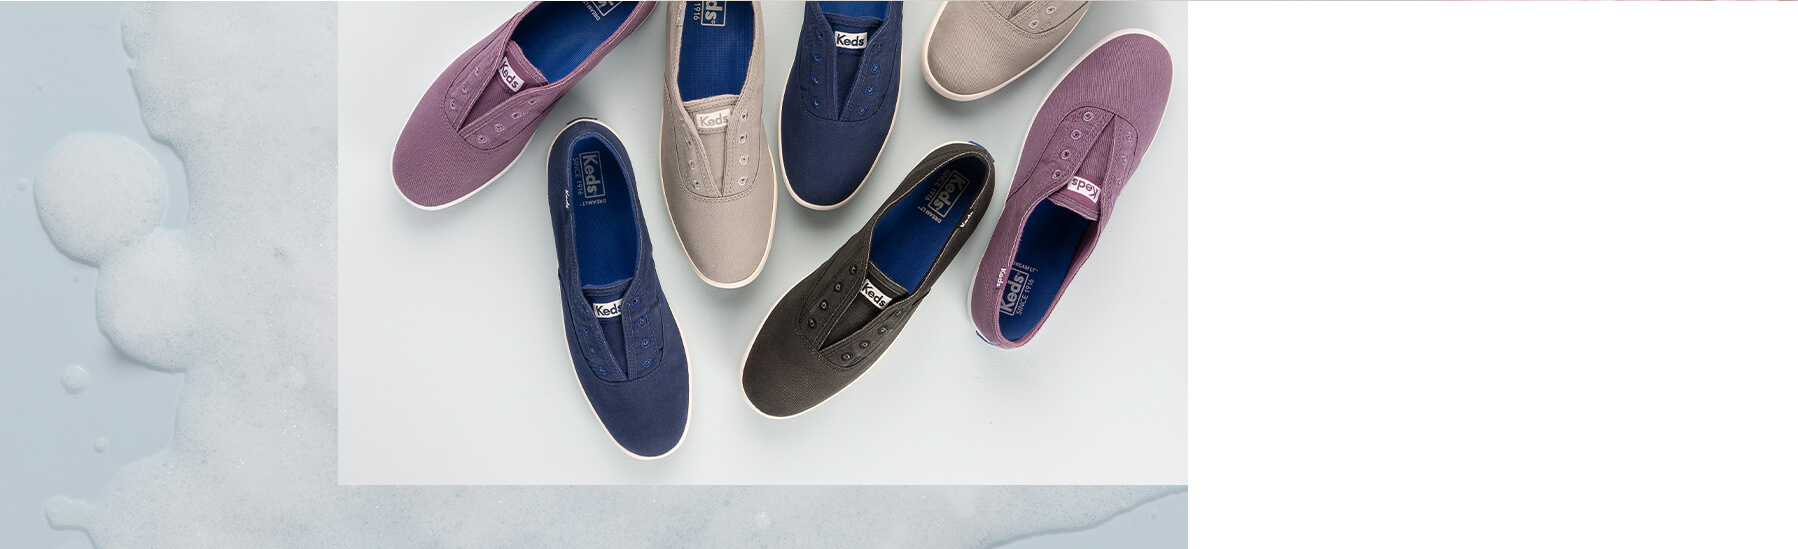 Keds - Washable pairs of shoes.